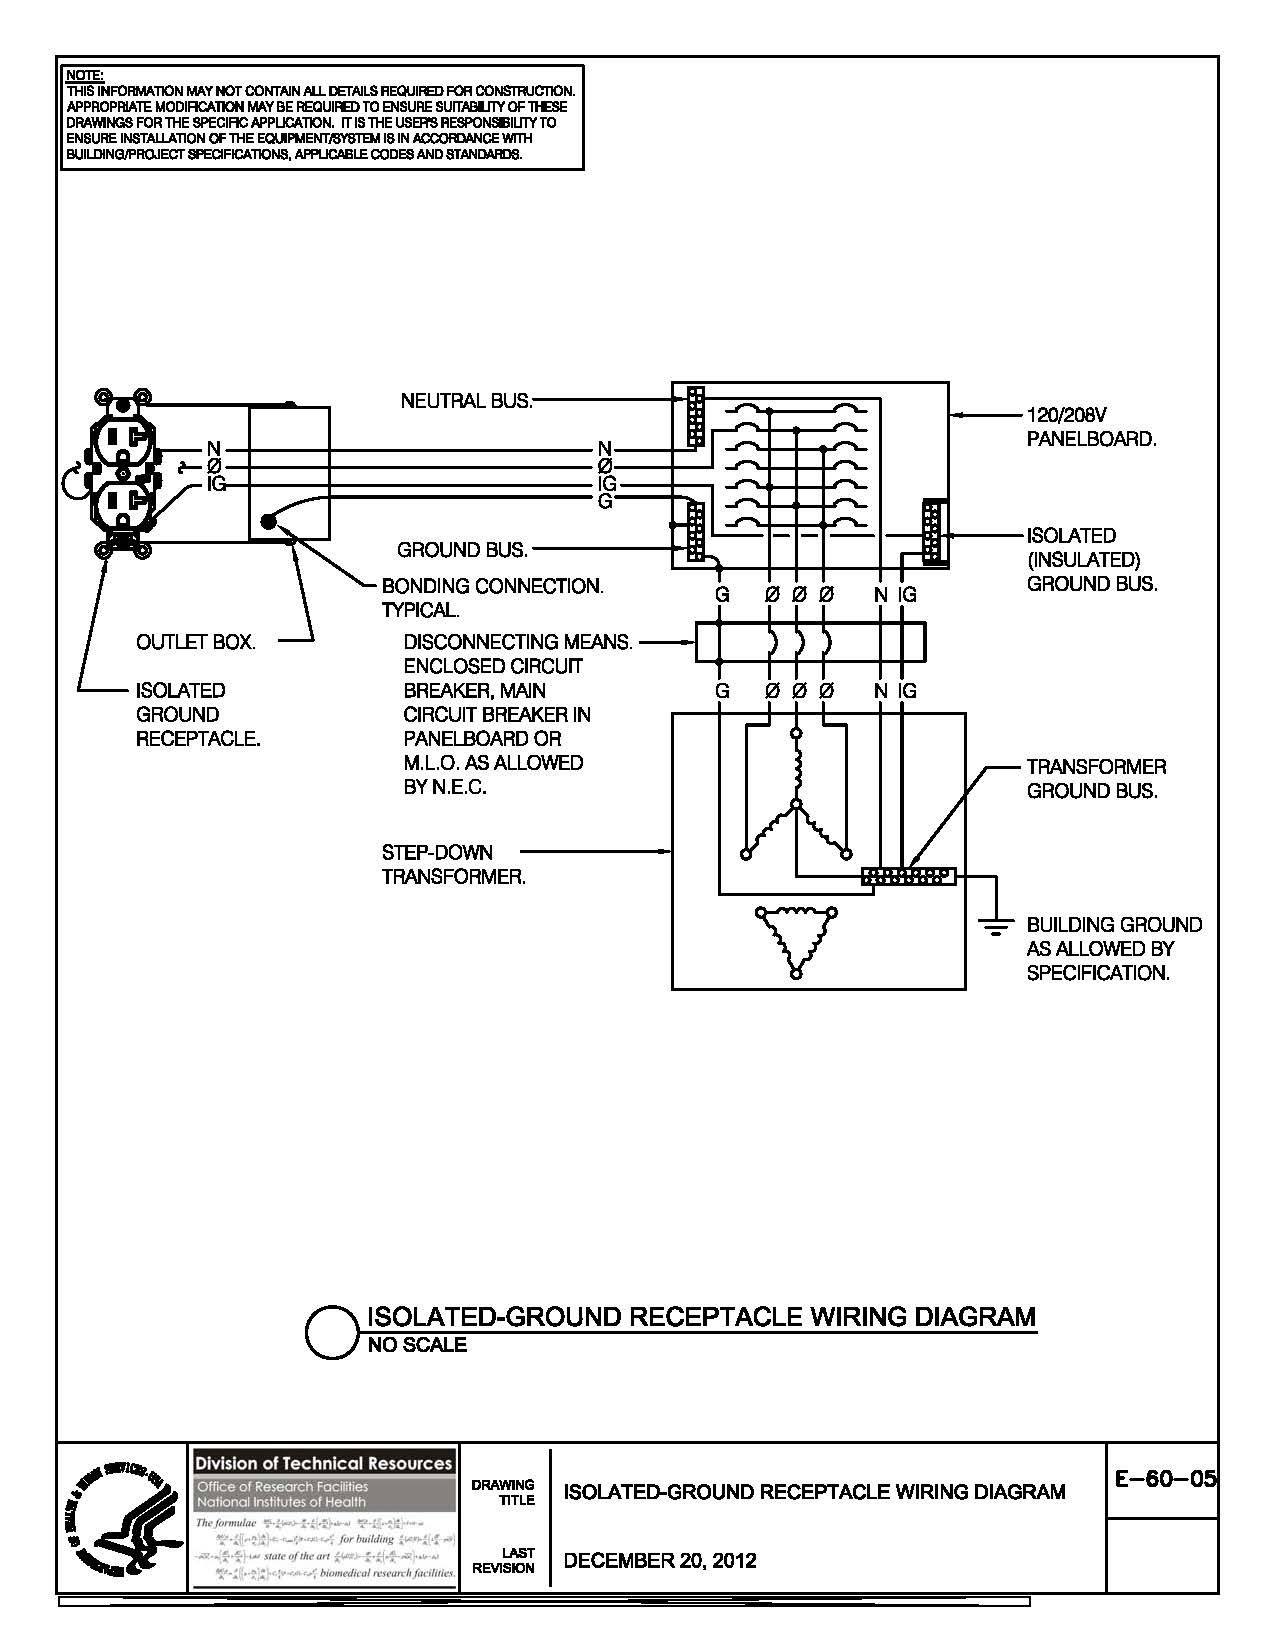 control transformer wiring diagram Collection-pad mount transformer wiring diagram Collection of E 60 05 Isolated Ground Receptacle Wiring Diagram DOWNLOAD Wiring Diagram 1-f